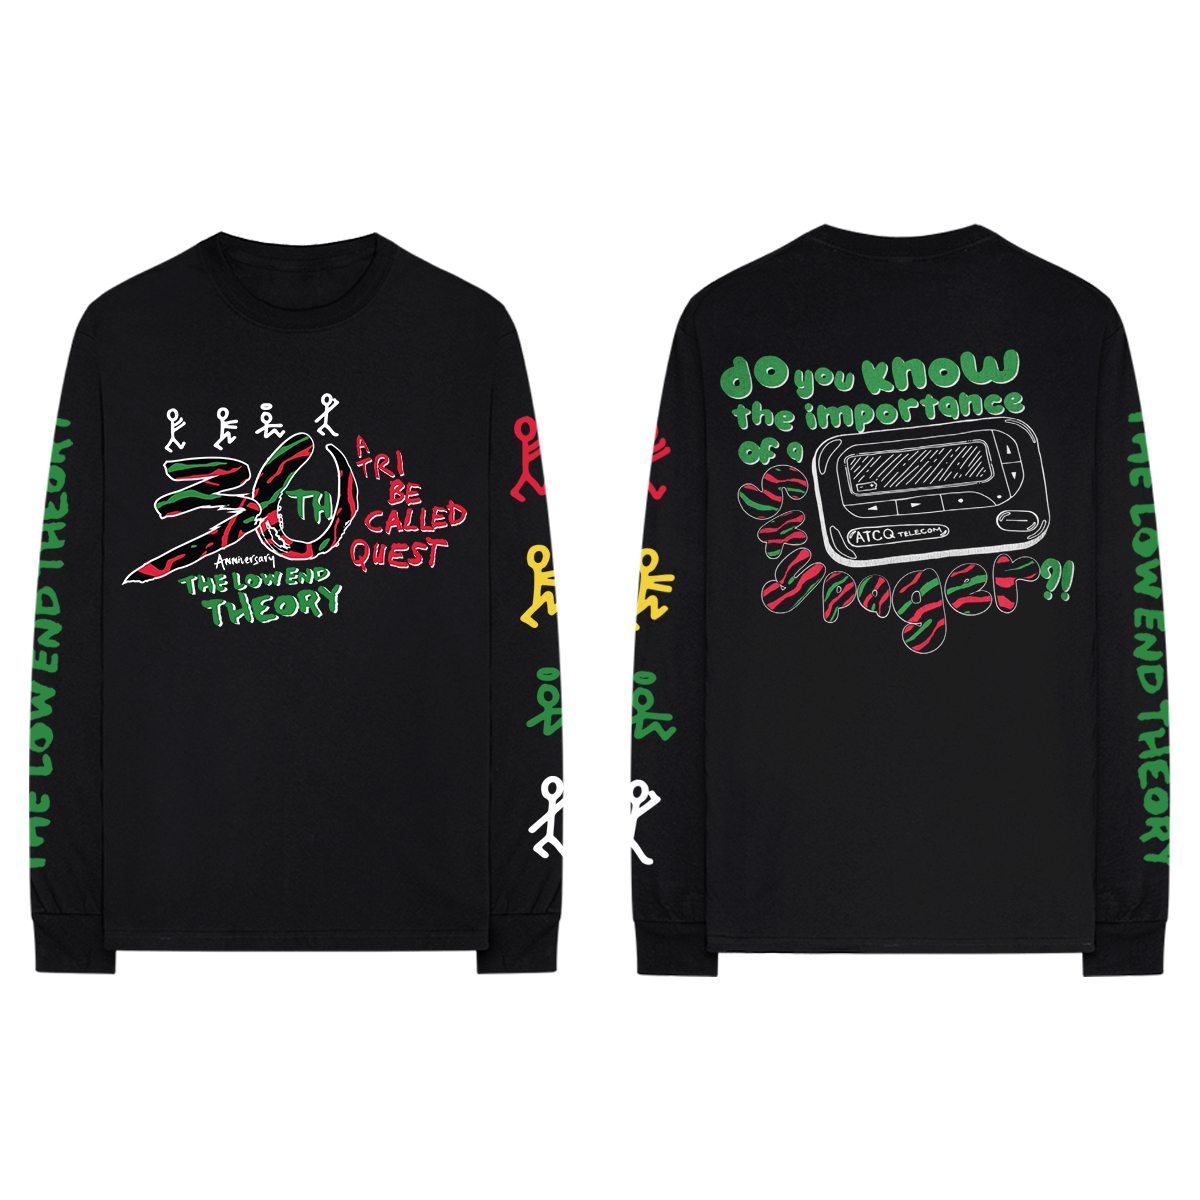 Low End Theory 30th Anniversary Black Long-Sleeve Tee